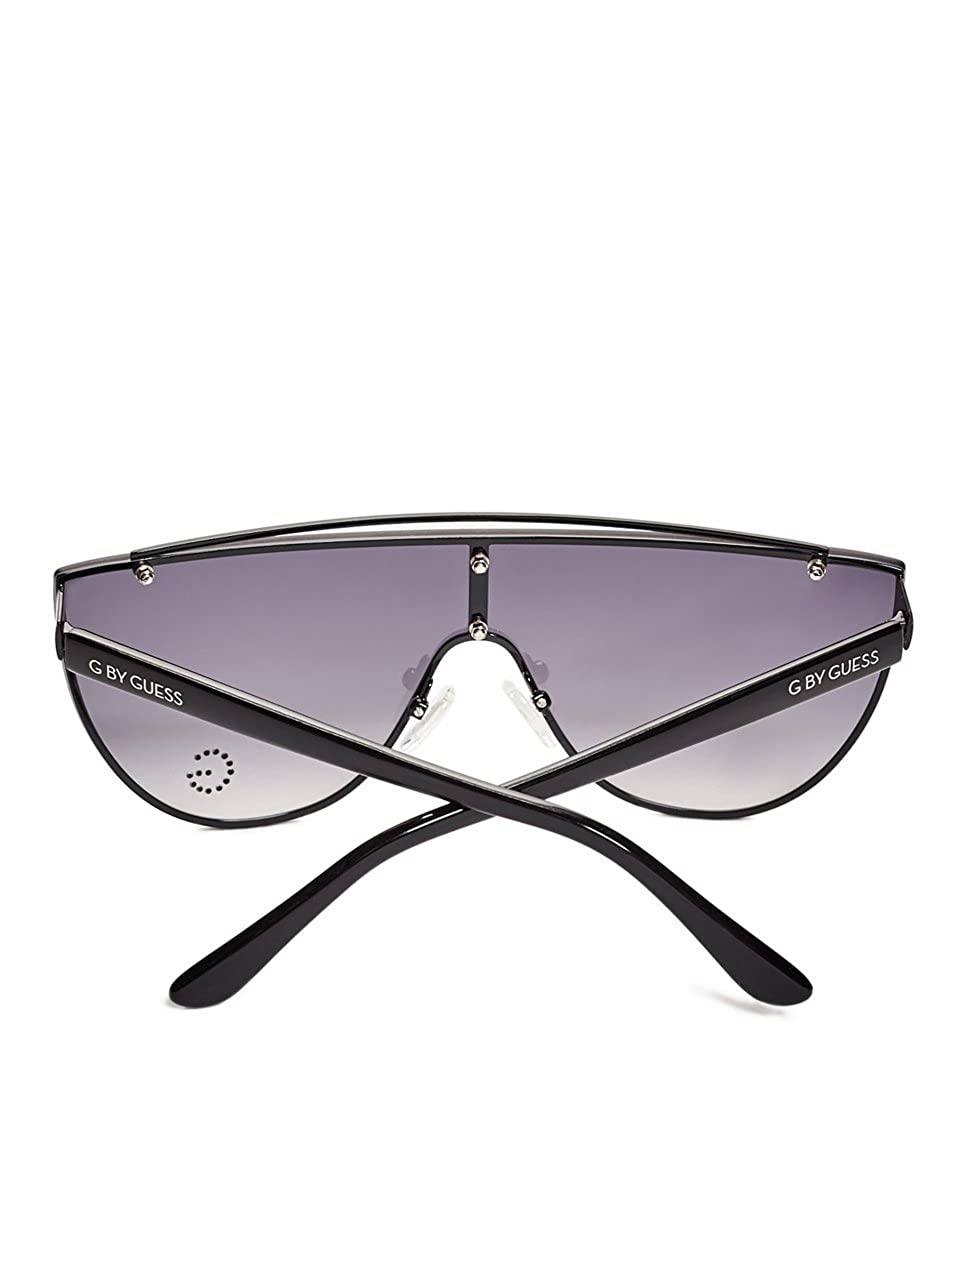 70ceba8229 G by GUESS Women s Flat Gradient Shield Sunglasses at Amazon Women s  Clothing store